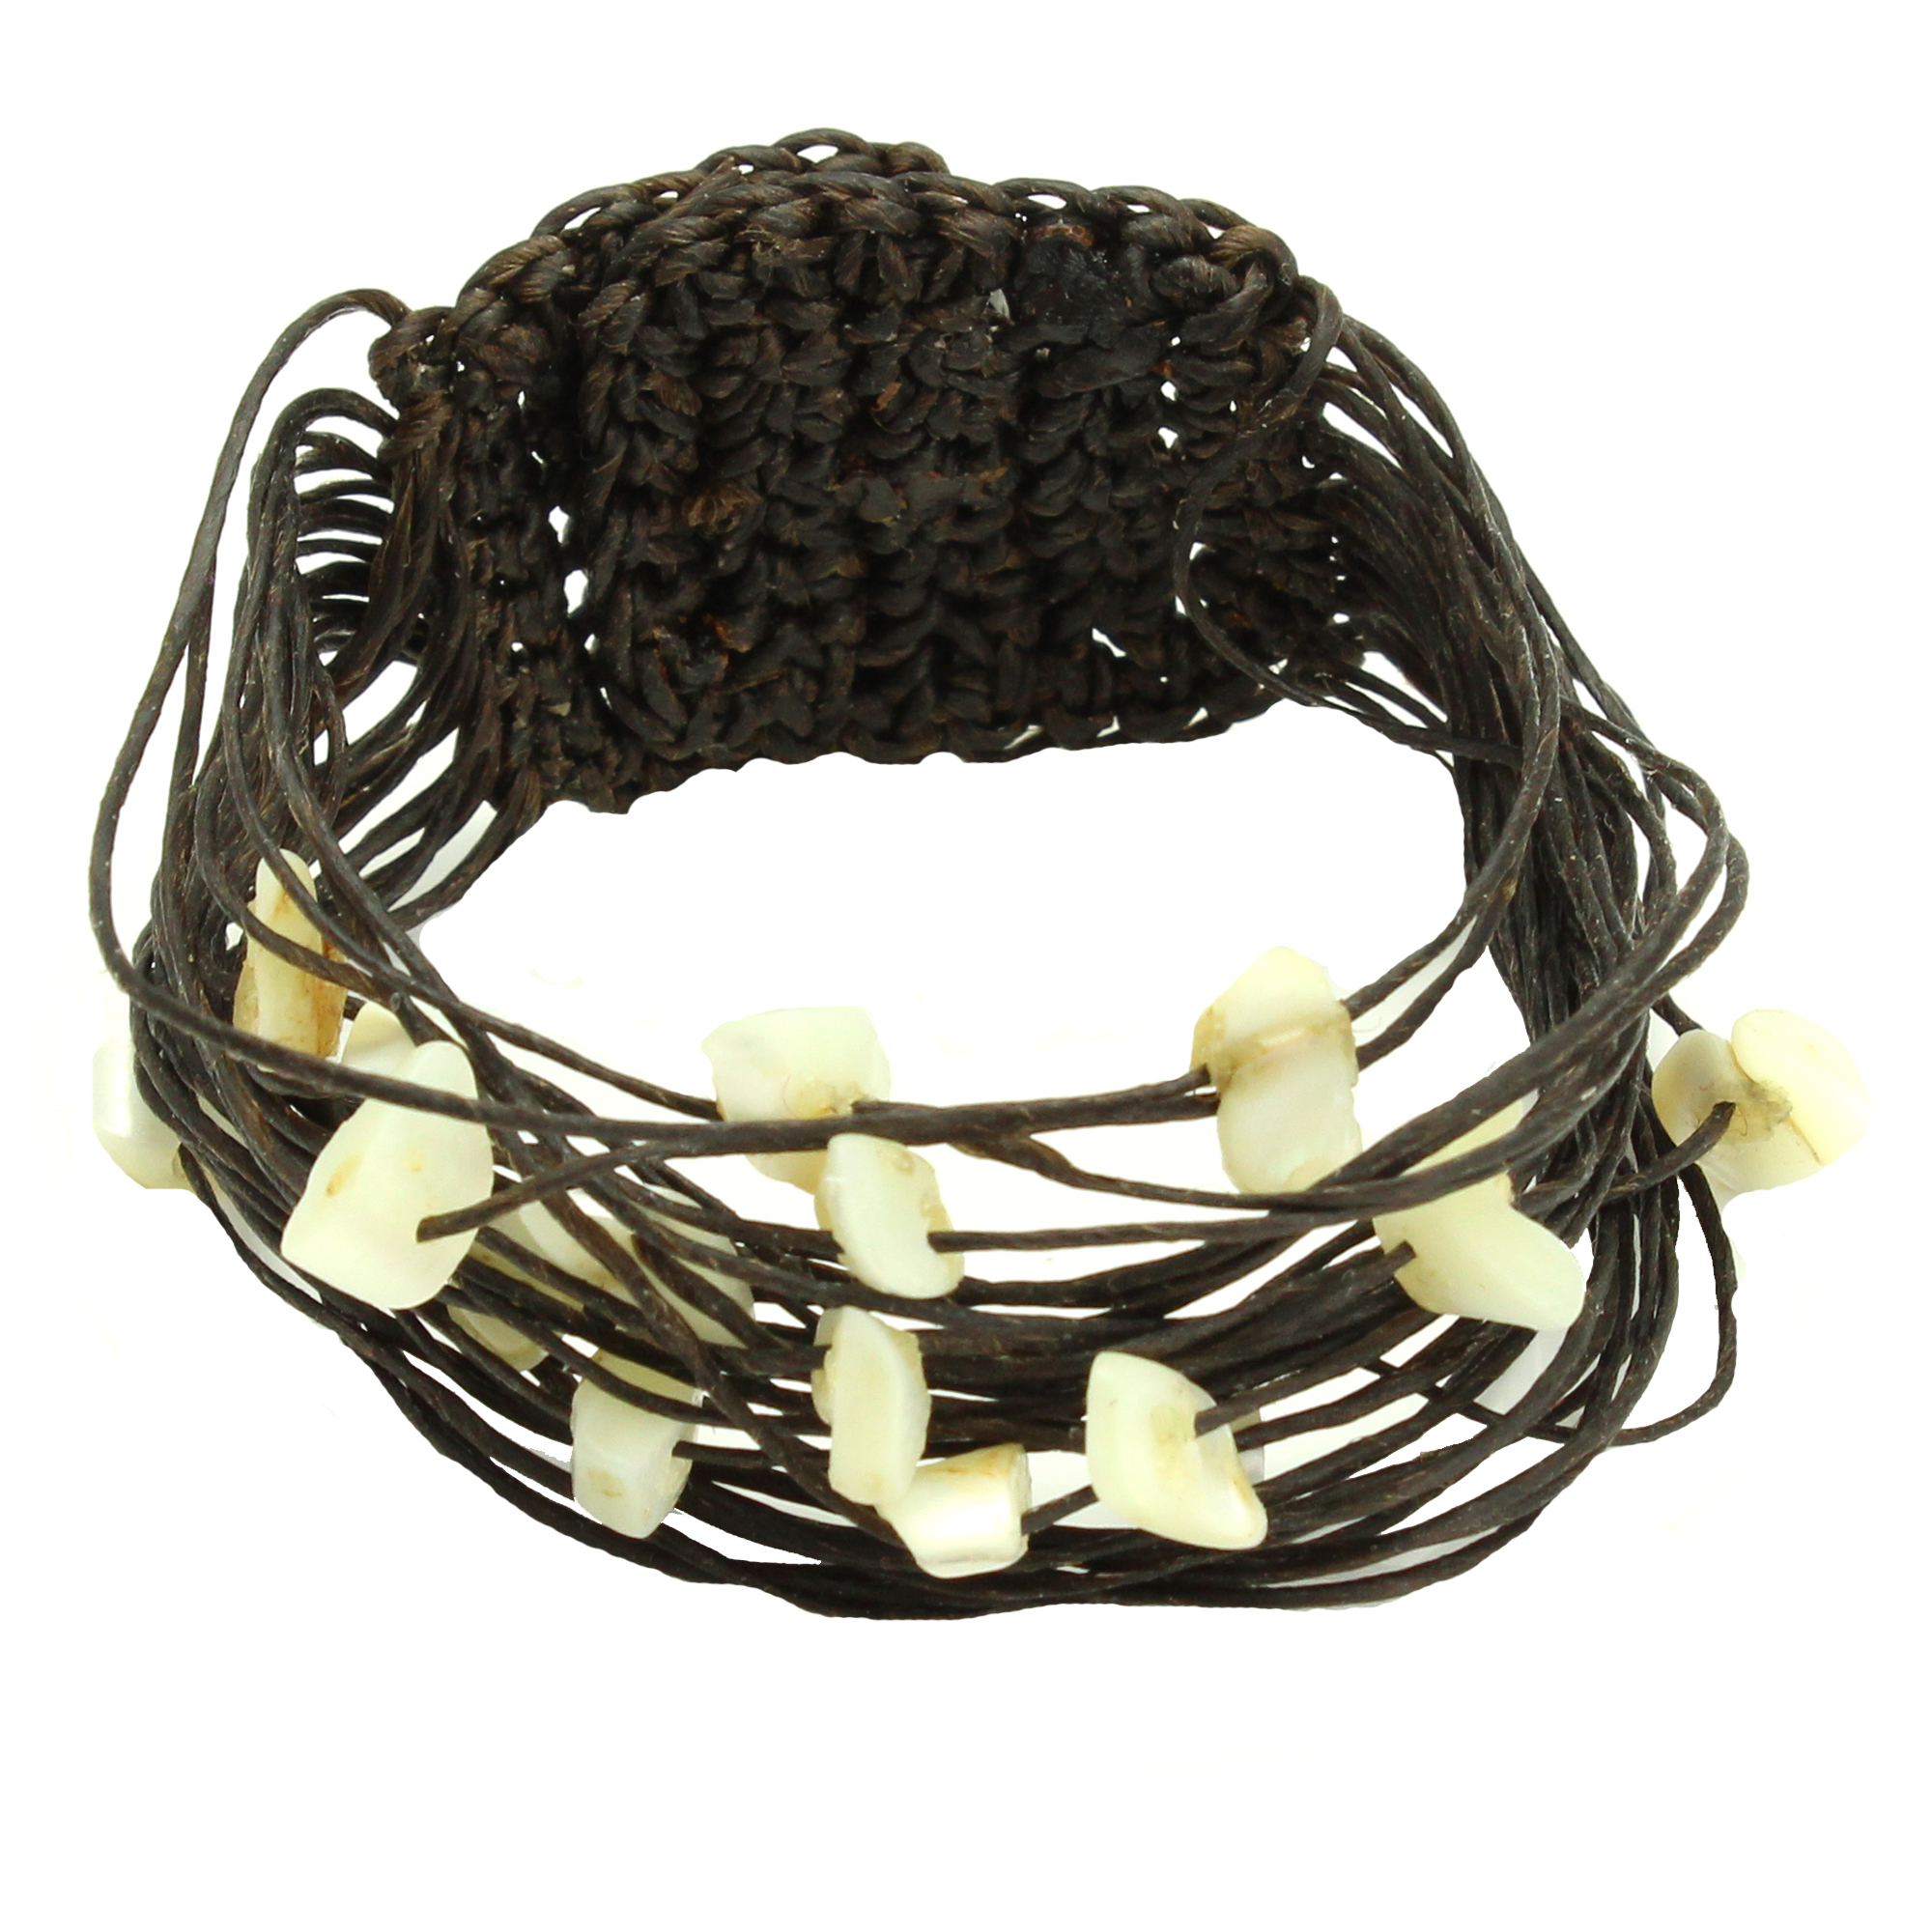 Wax Cotton and White Stone Brown Multi Strand Bracelet, Handmade Fair Trade